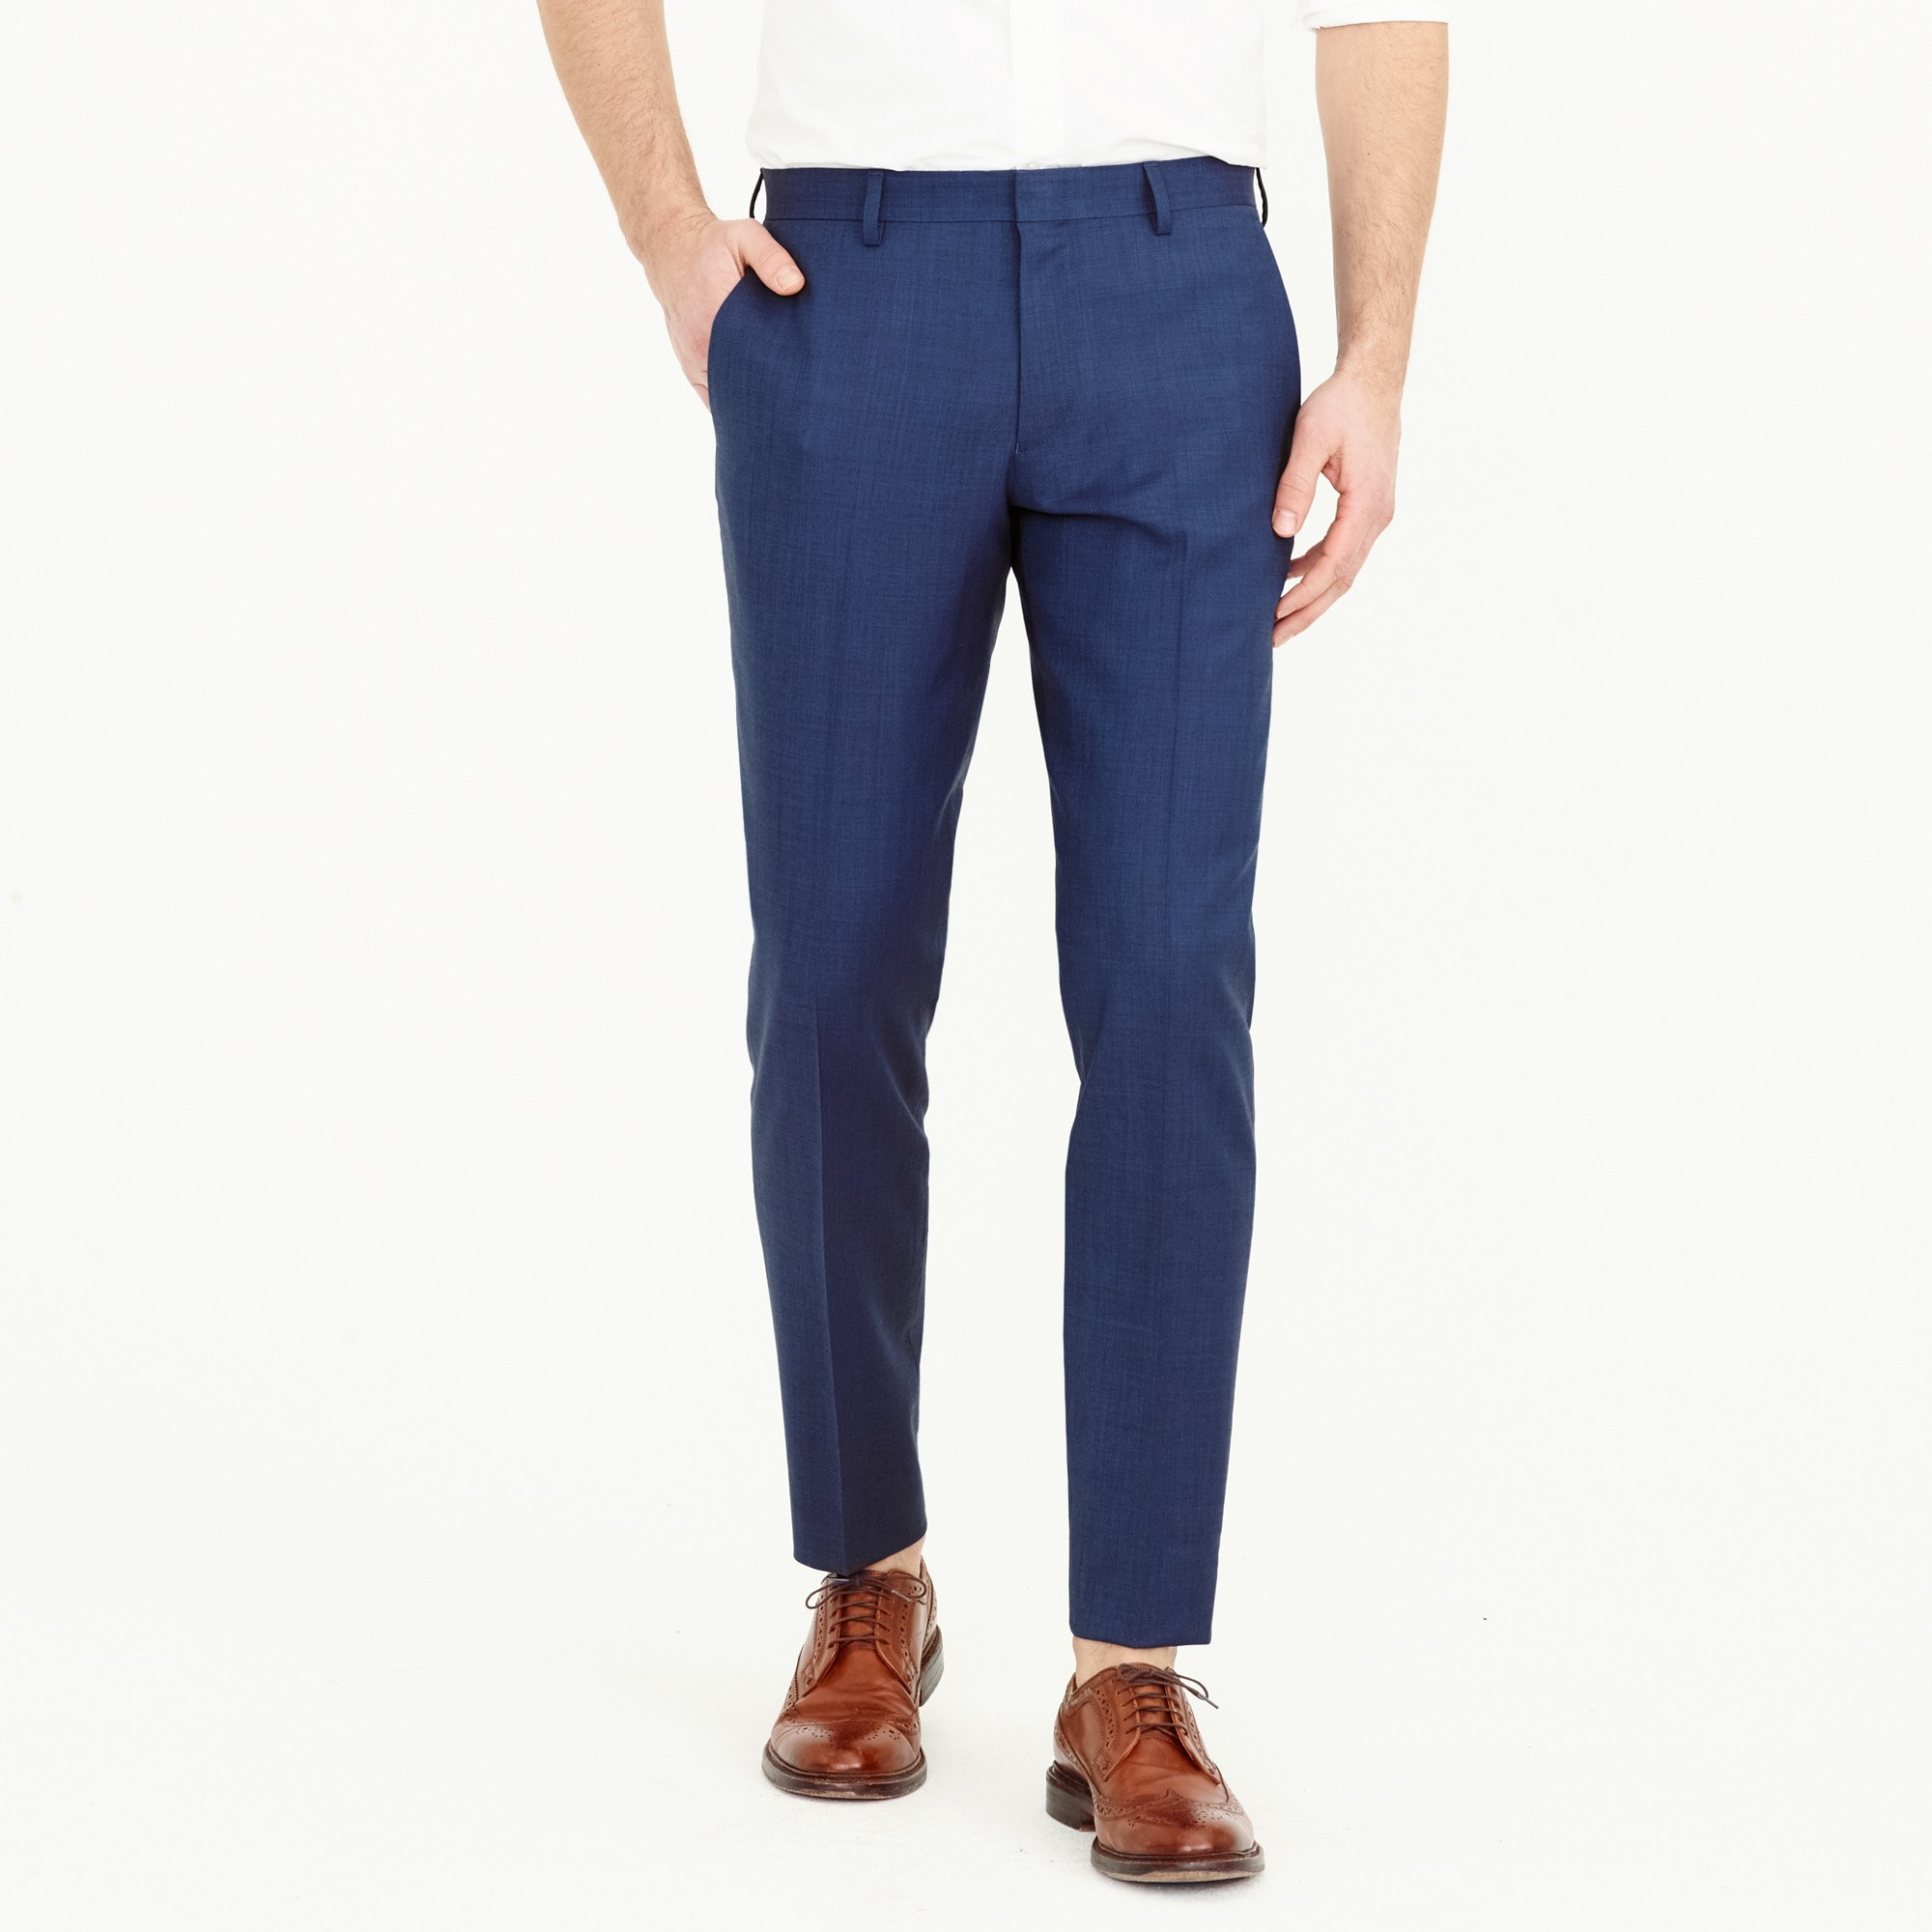 Image 1 for Ludlow Slim-fit suit pant in Italian stretch worsted wool